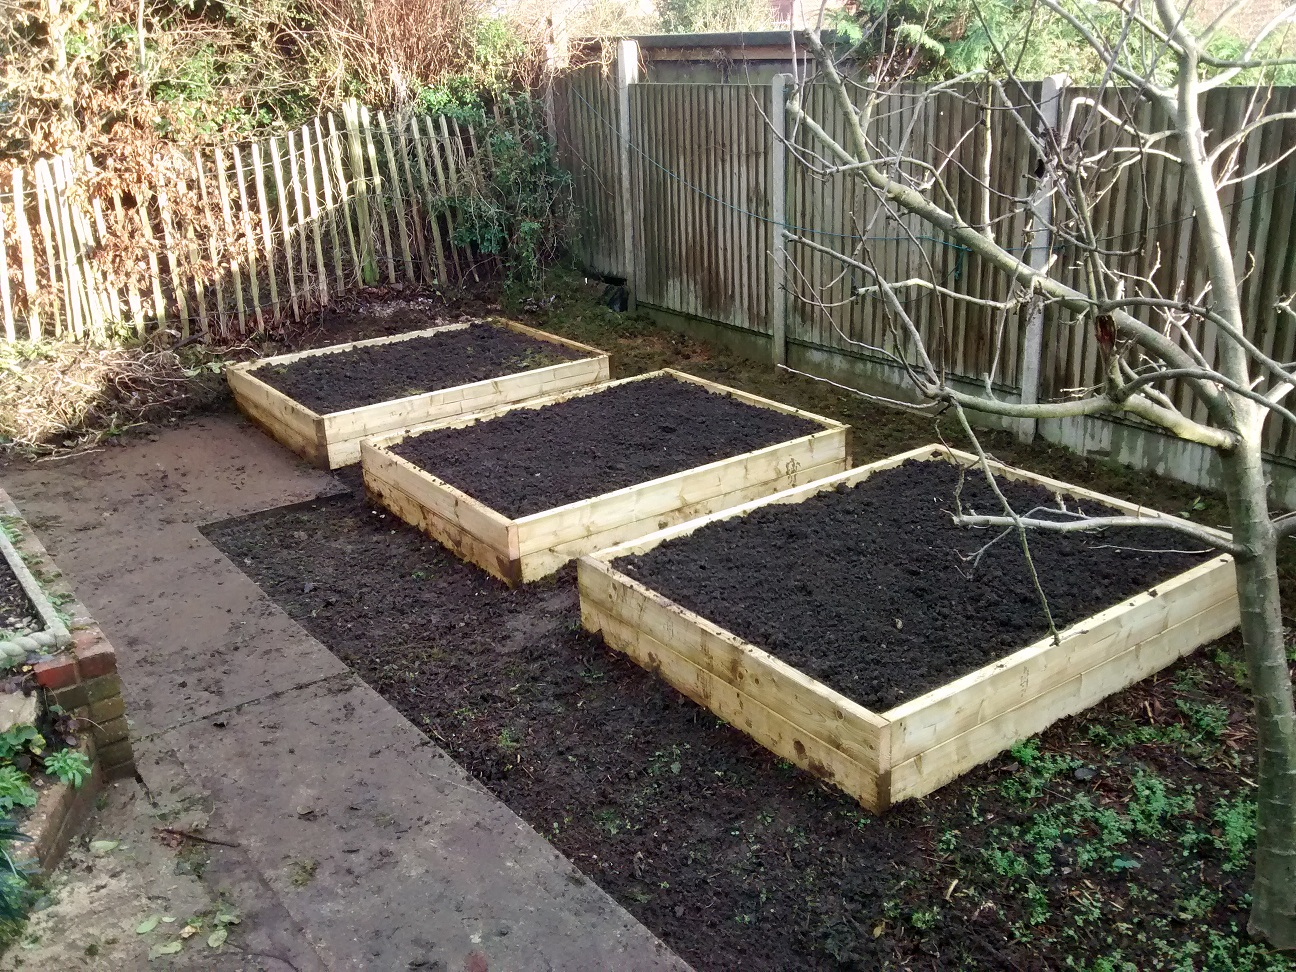 Thrtee raised beds